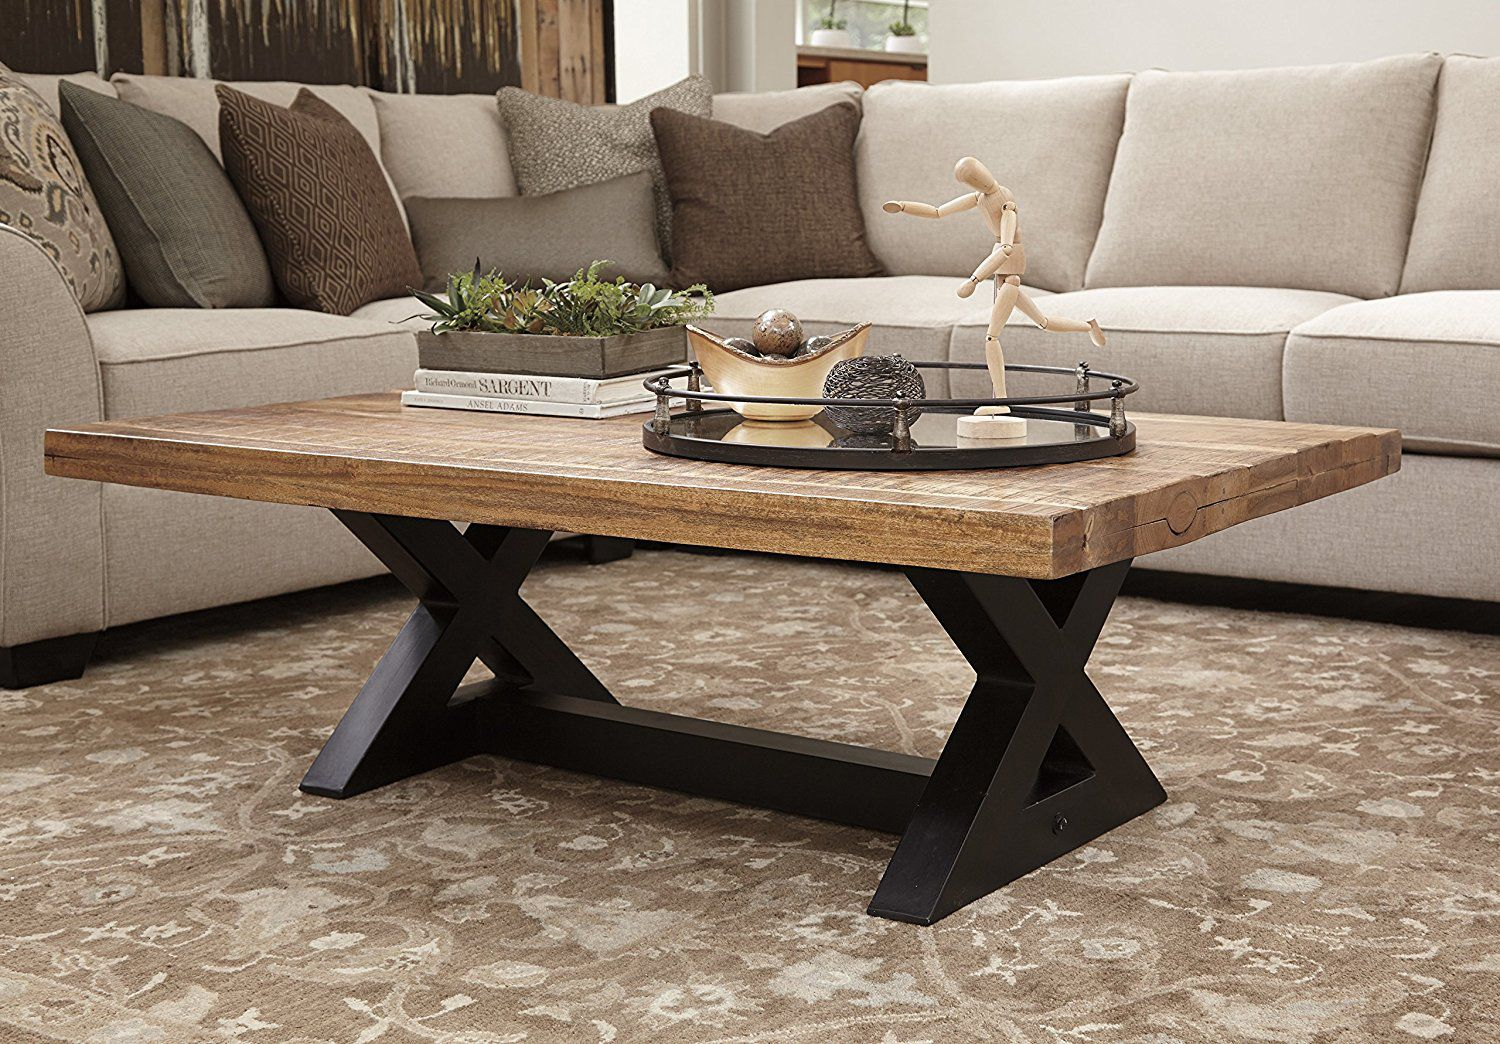 The 8 Best Coffee Tables of 2019